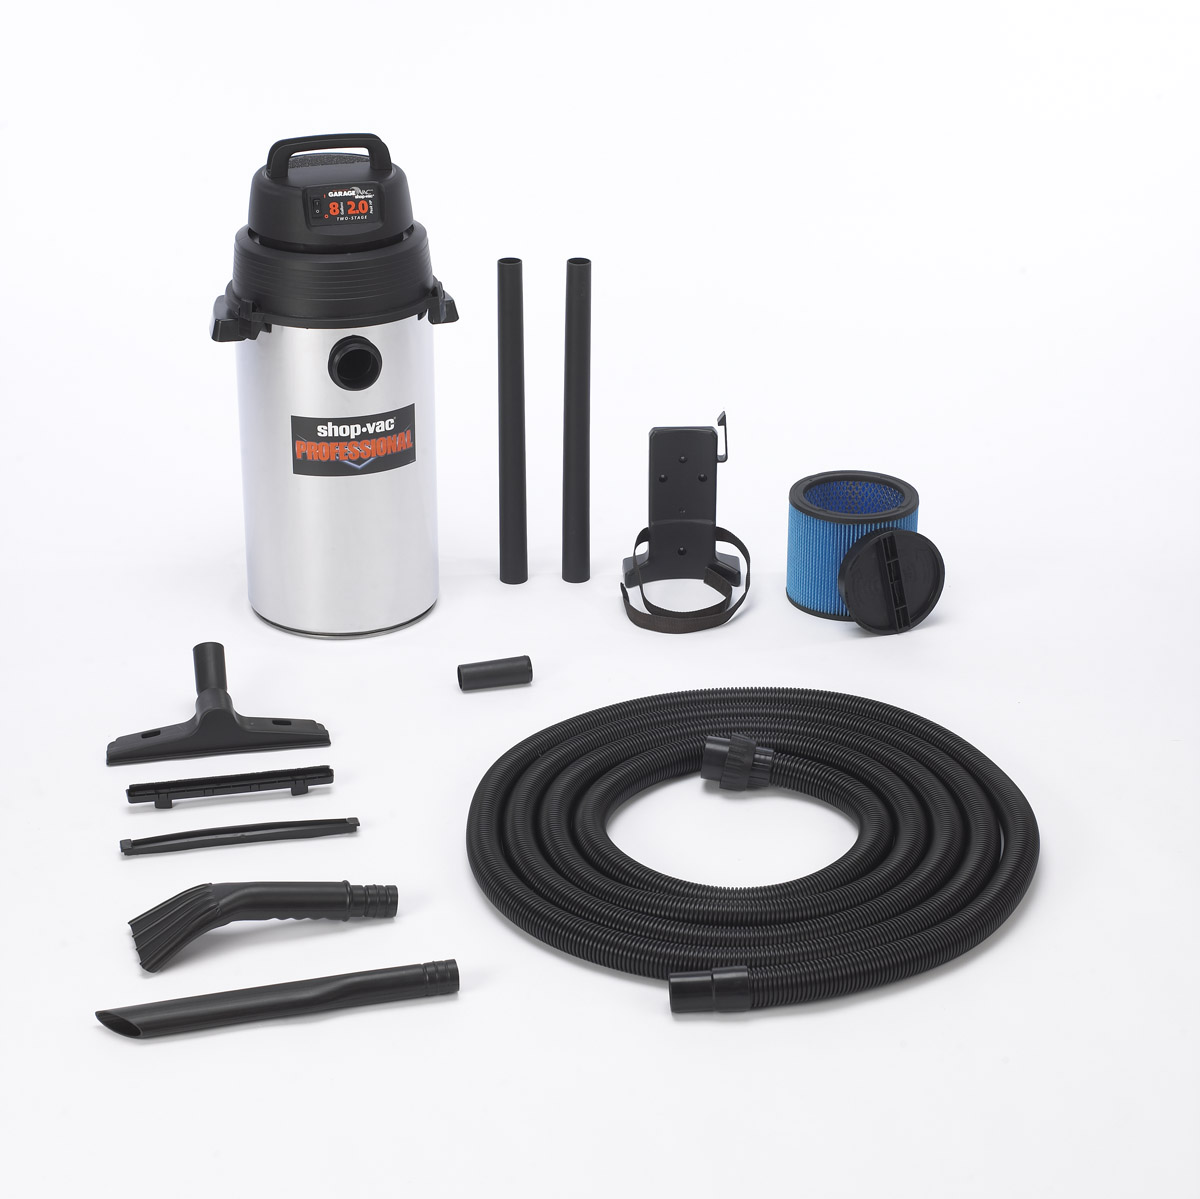 shop vac stainless steel 8 gallon wall mounted garage wet dry vacuum. Black Bedroom Furniture Sets. Home Design Ideas